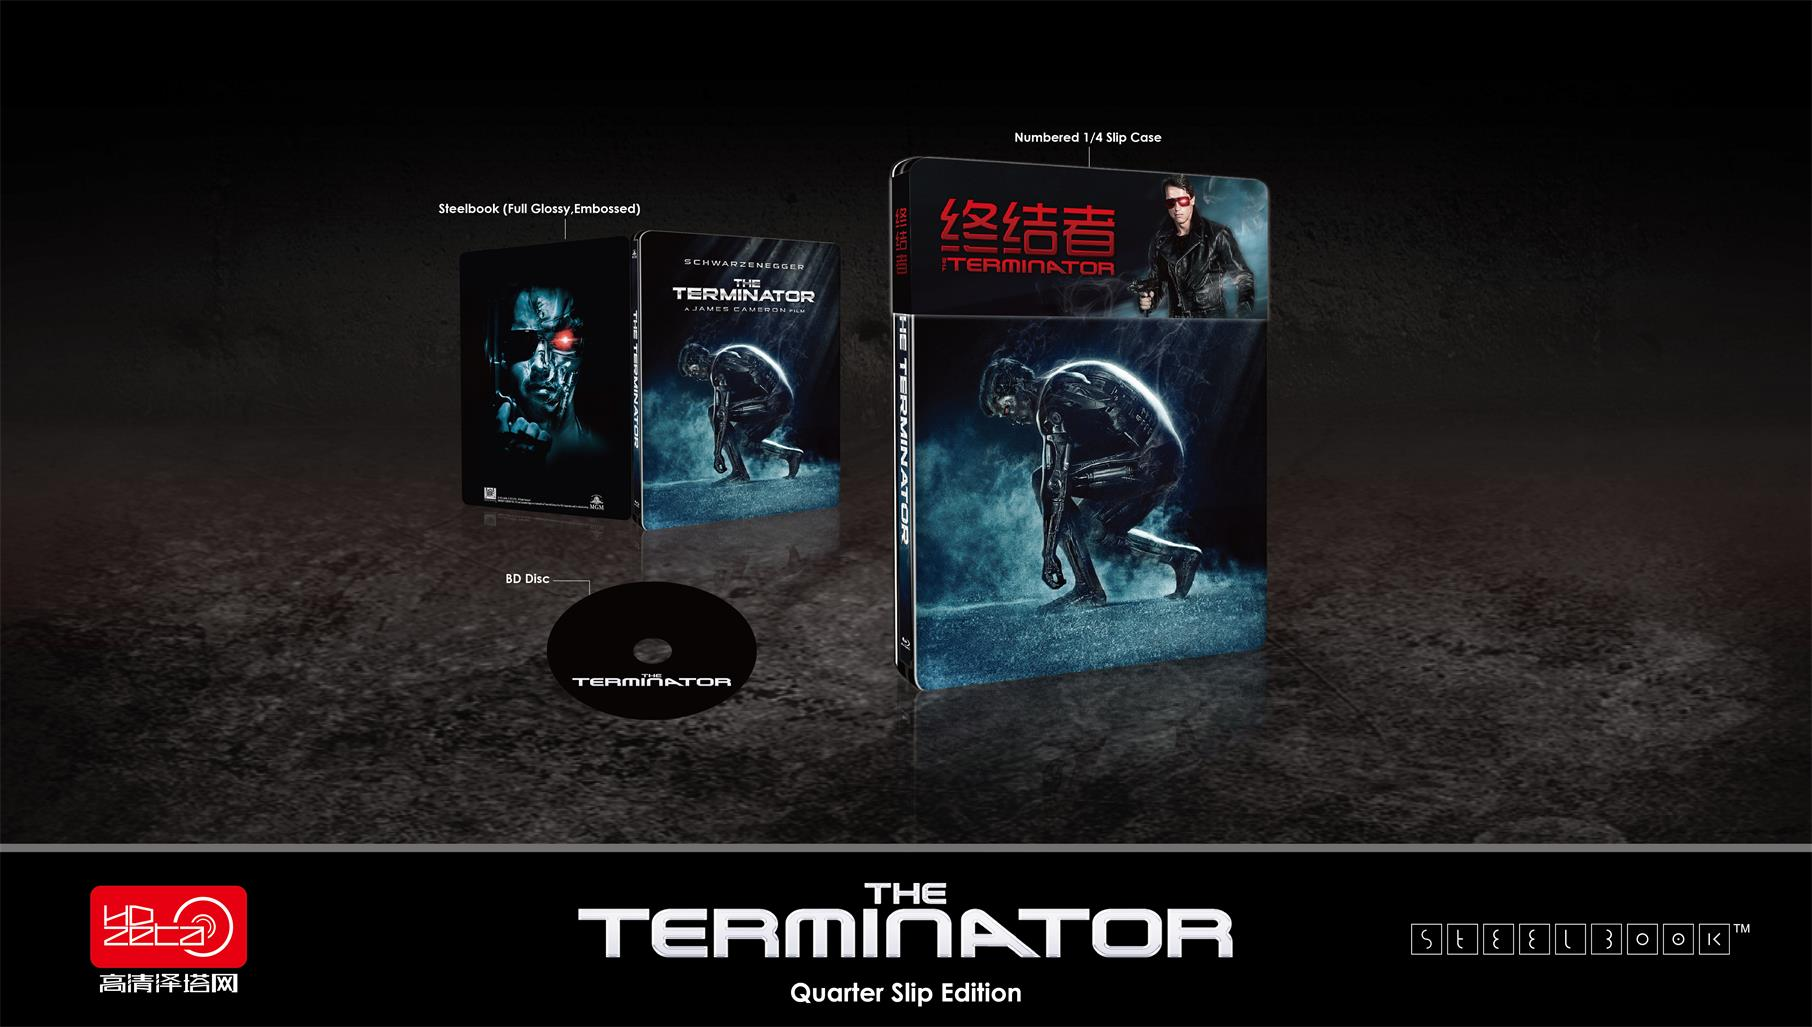 The Terminator HDzeta Exclusive steelbook 1/4slip Edition